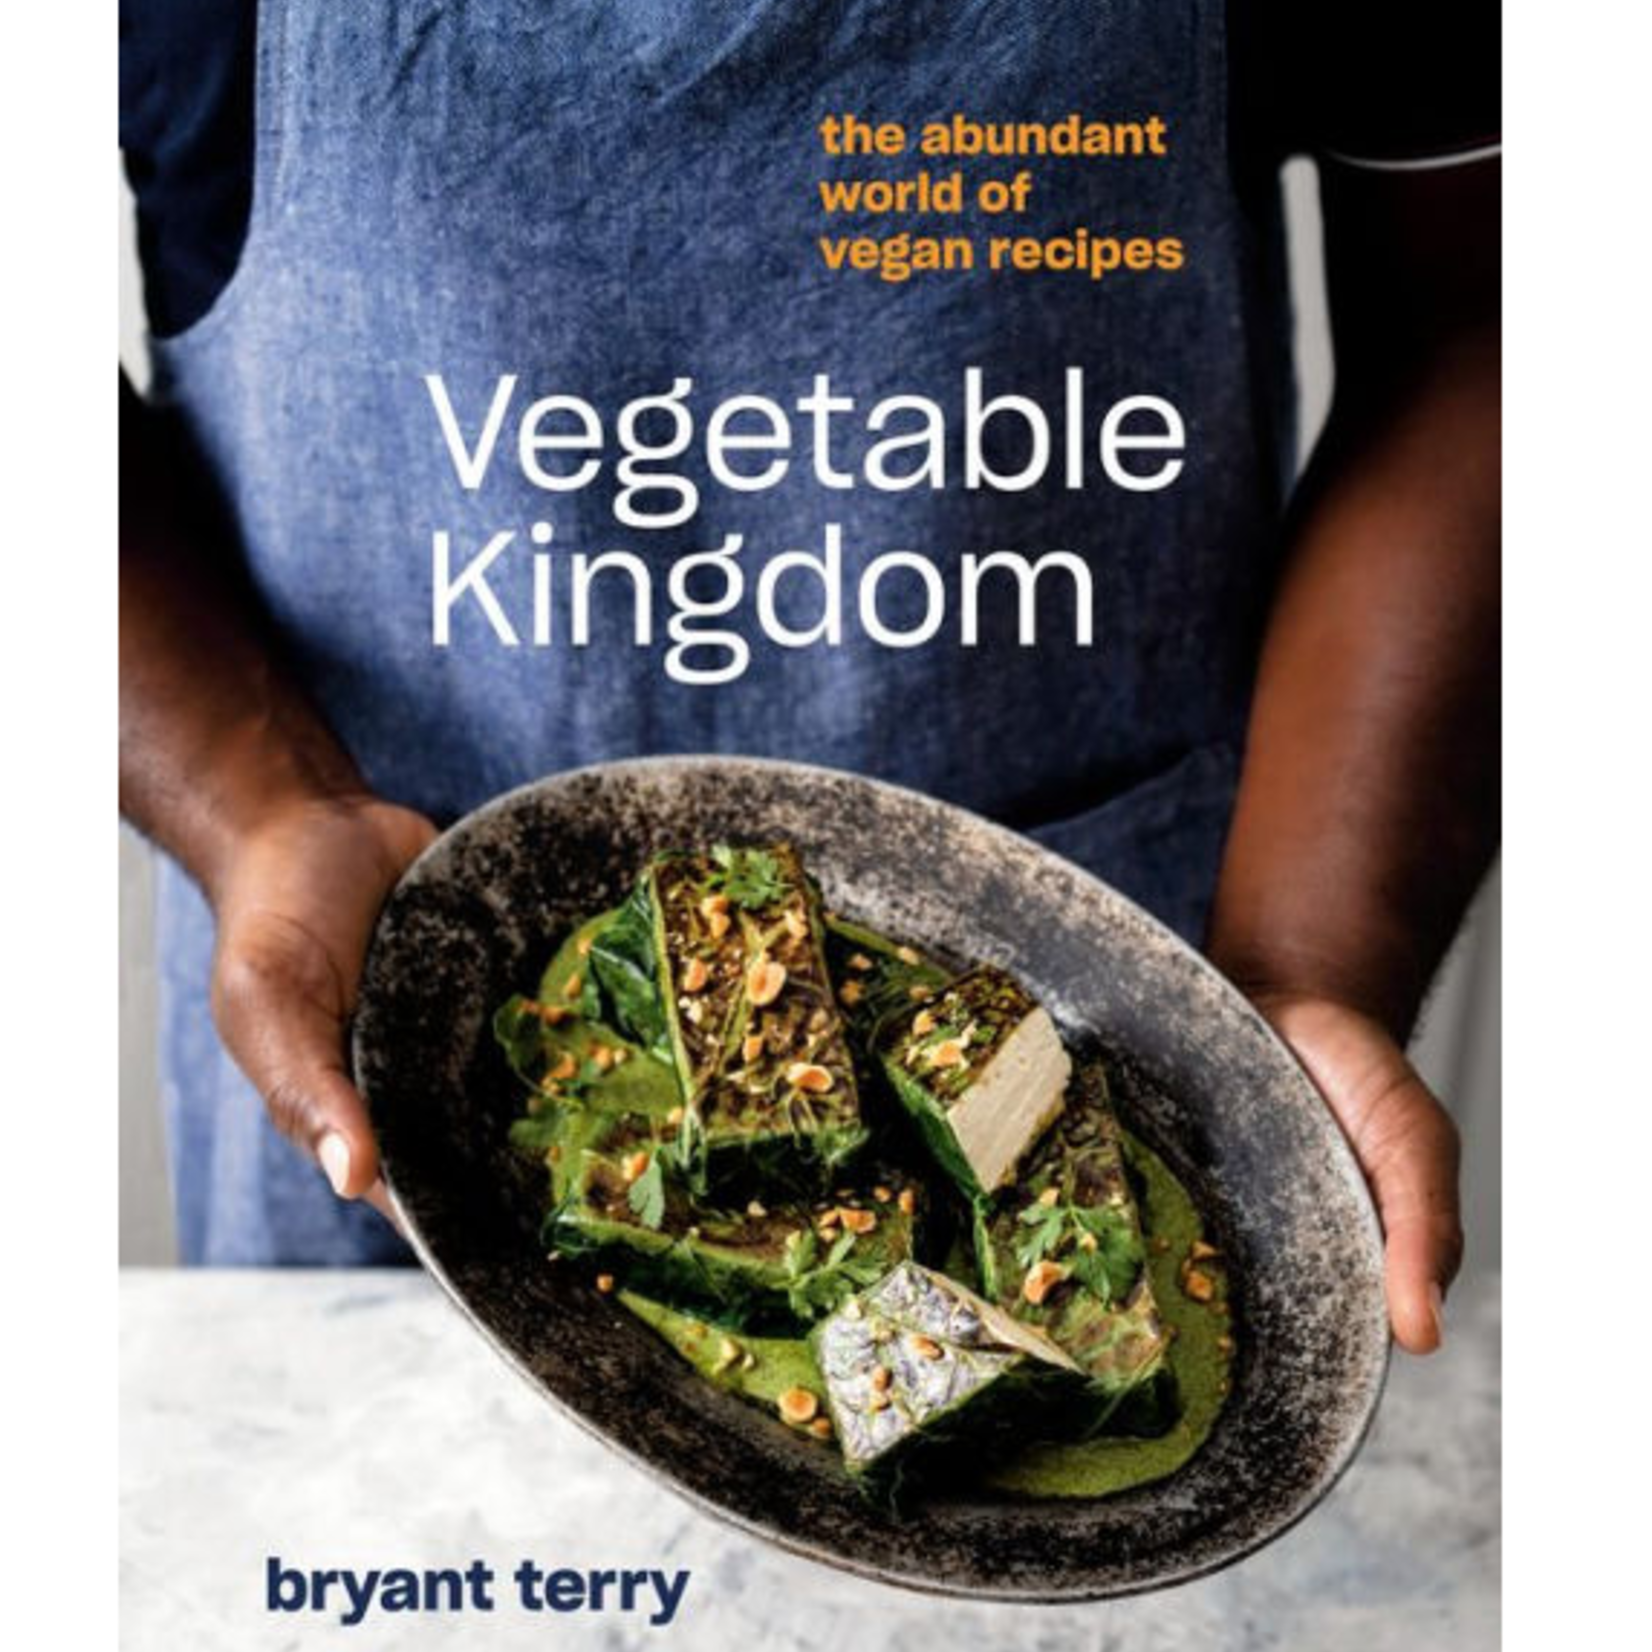 Vegetable Kingdom - The Abundant World of Vegan Recipes